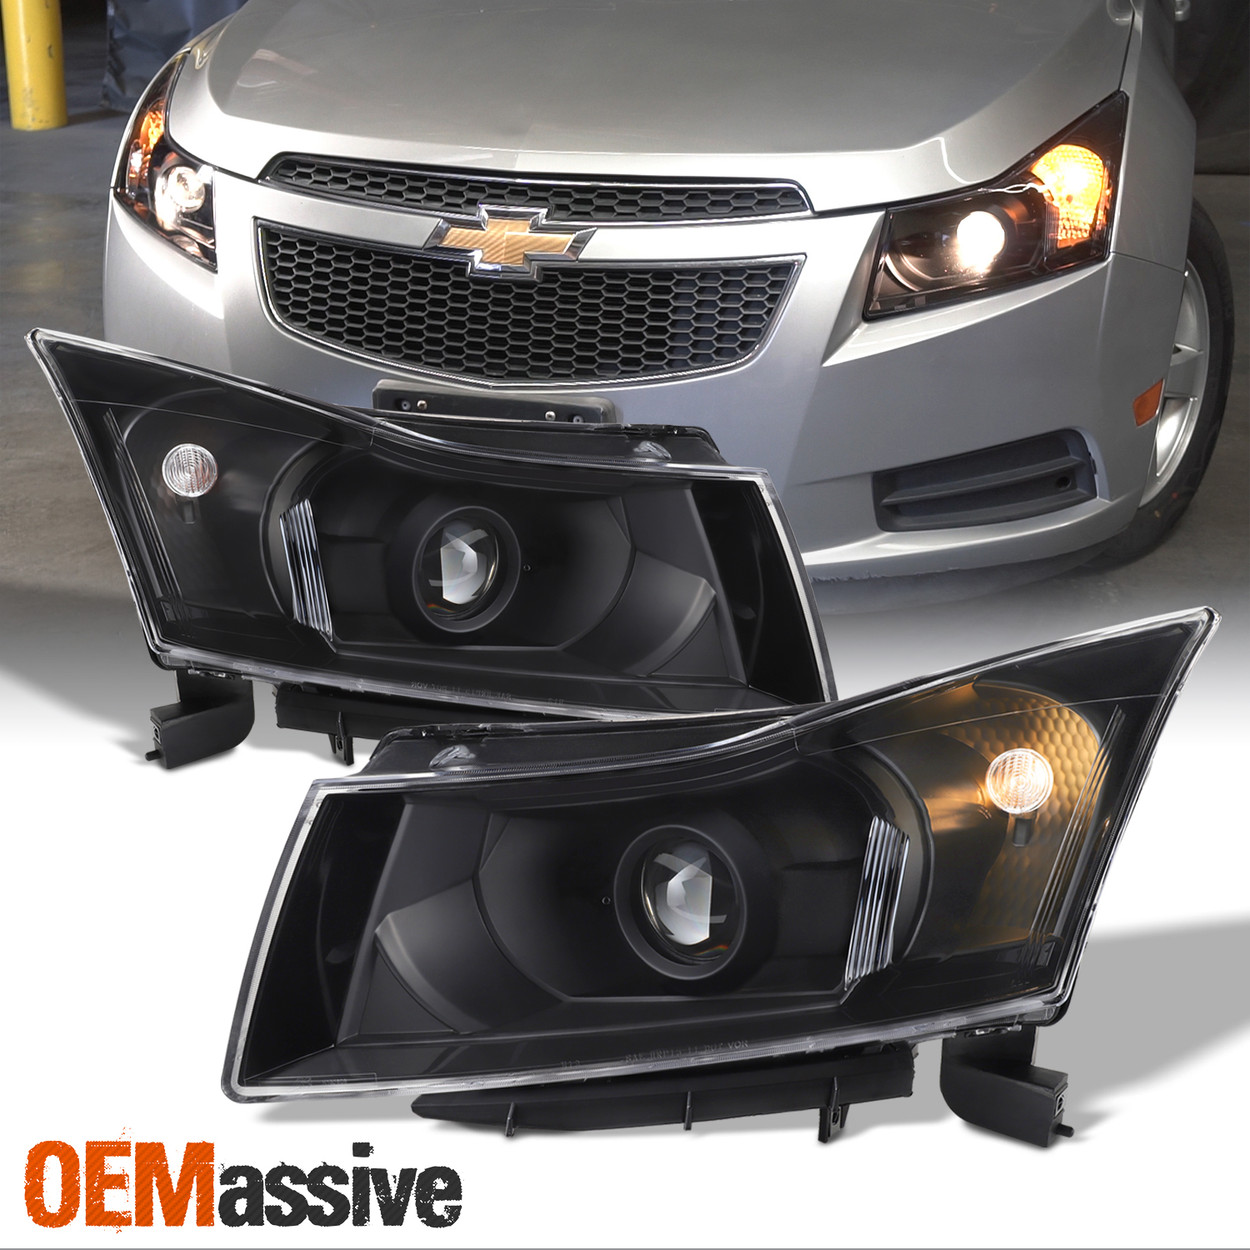 Fit 2011 2012 2013 2014 2015 Chevy Cruze Black Projector Headlights Replacement Oemassive